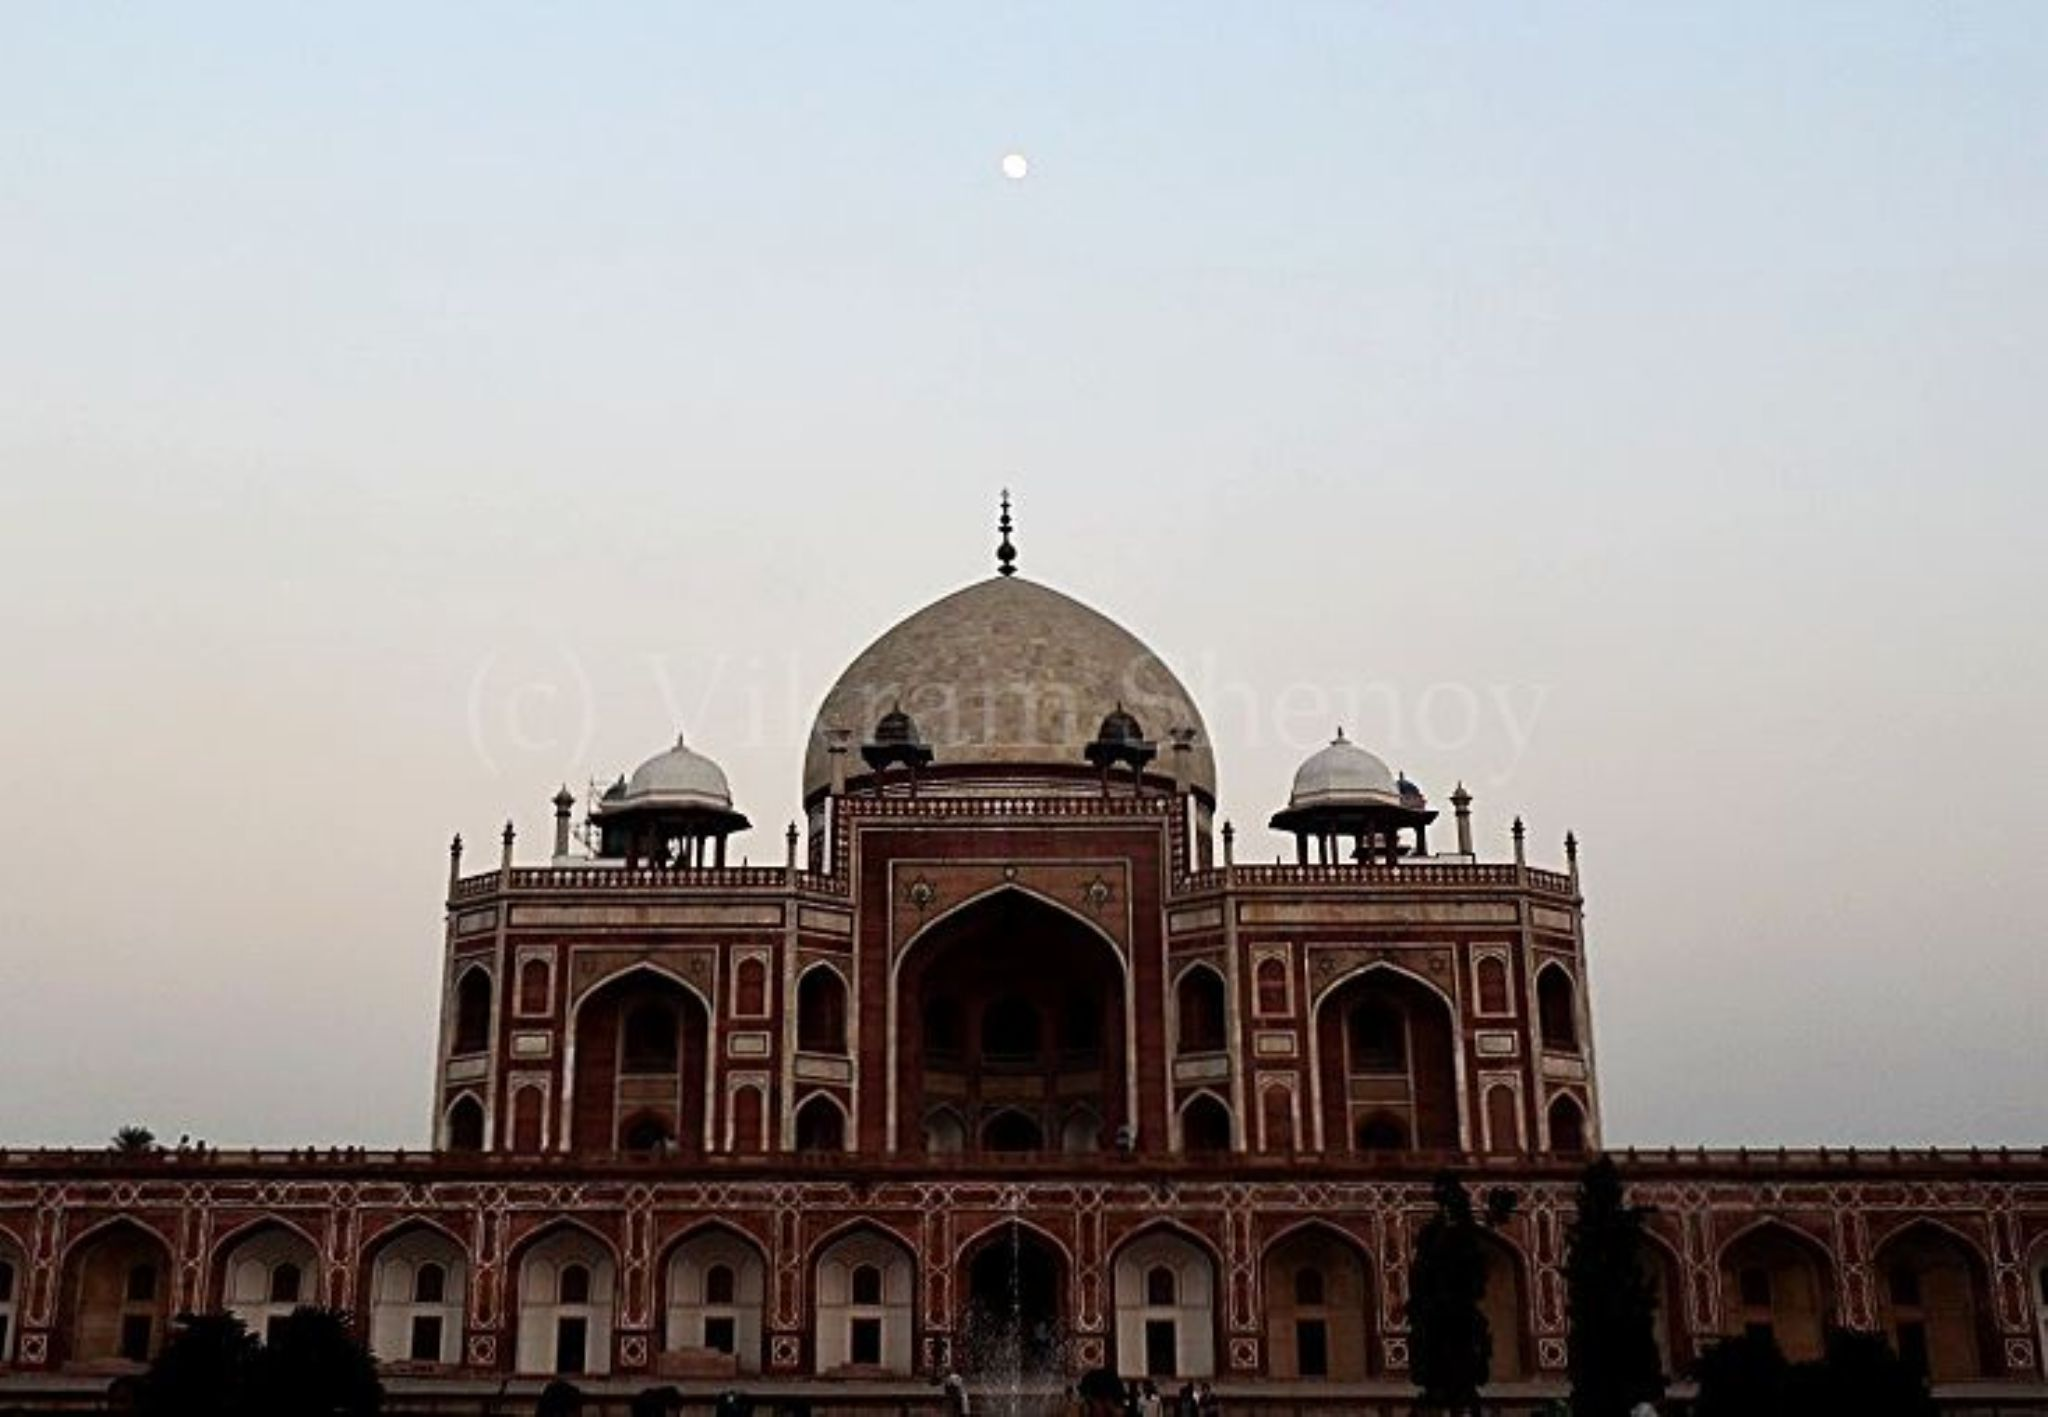 Humayun's Tomb in the twilight by Vikram Shenoy